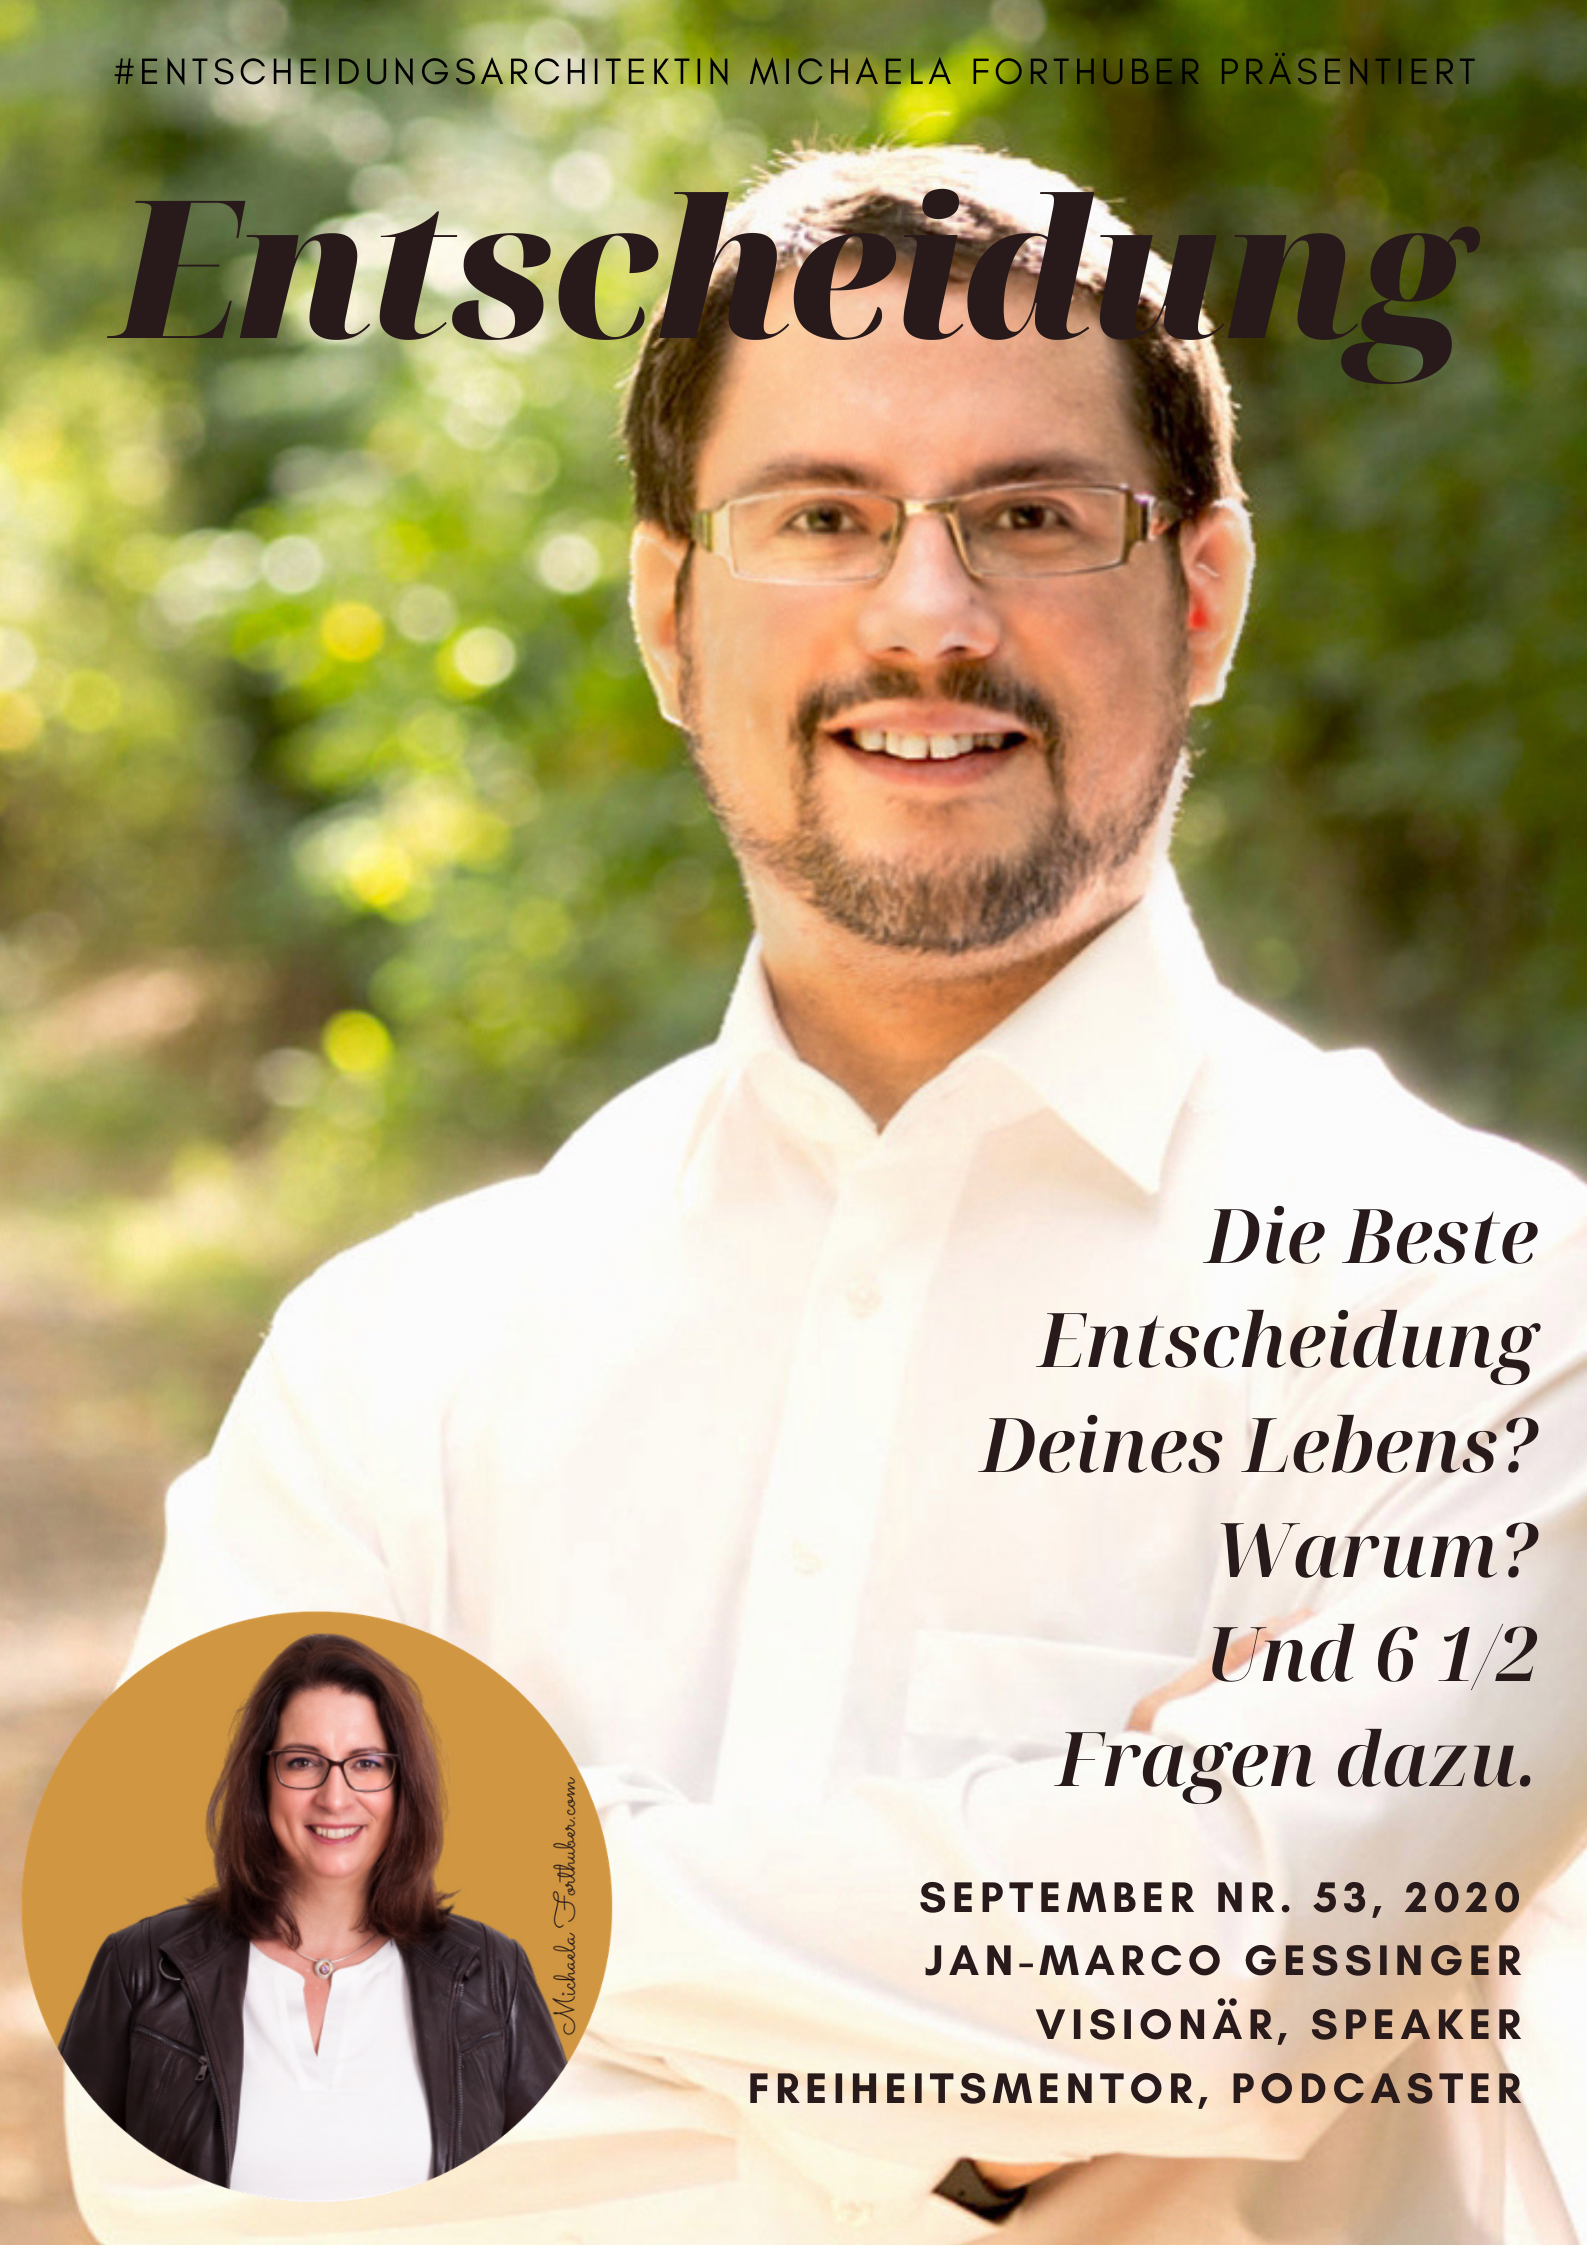 Blog Interview Entscheiden Cover Michaela Forthuber #Entscheidungsarchitektin mit Jan-Marco Gessinger